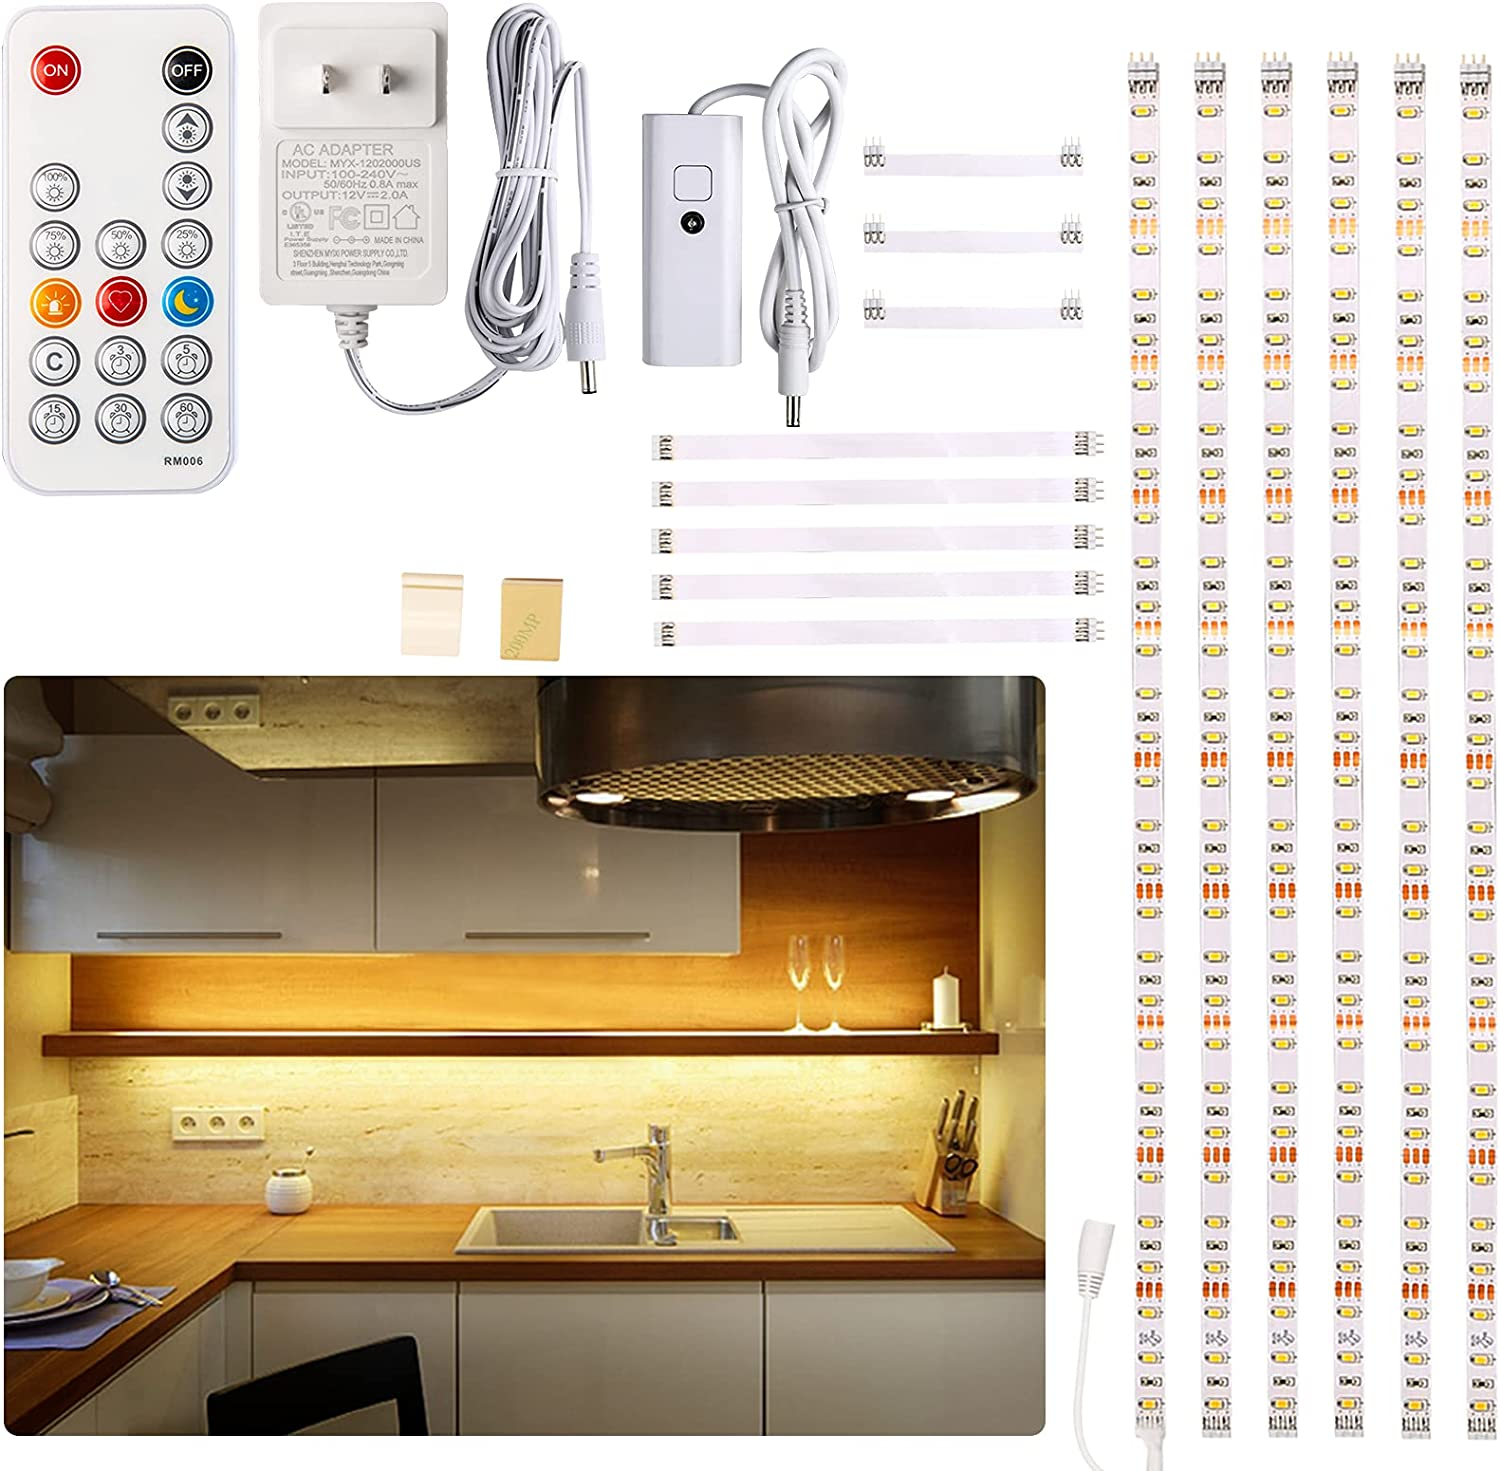 Under Cabinet Led Lighting Kit 6 Pcs Led Strip Lights With Remote Control Dimmer And Adapter Dimmable For Kitchen Cabinet Counter Shelf Tv Back Showcase 2700k Warm White Bright 1500lm Timing